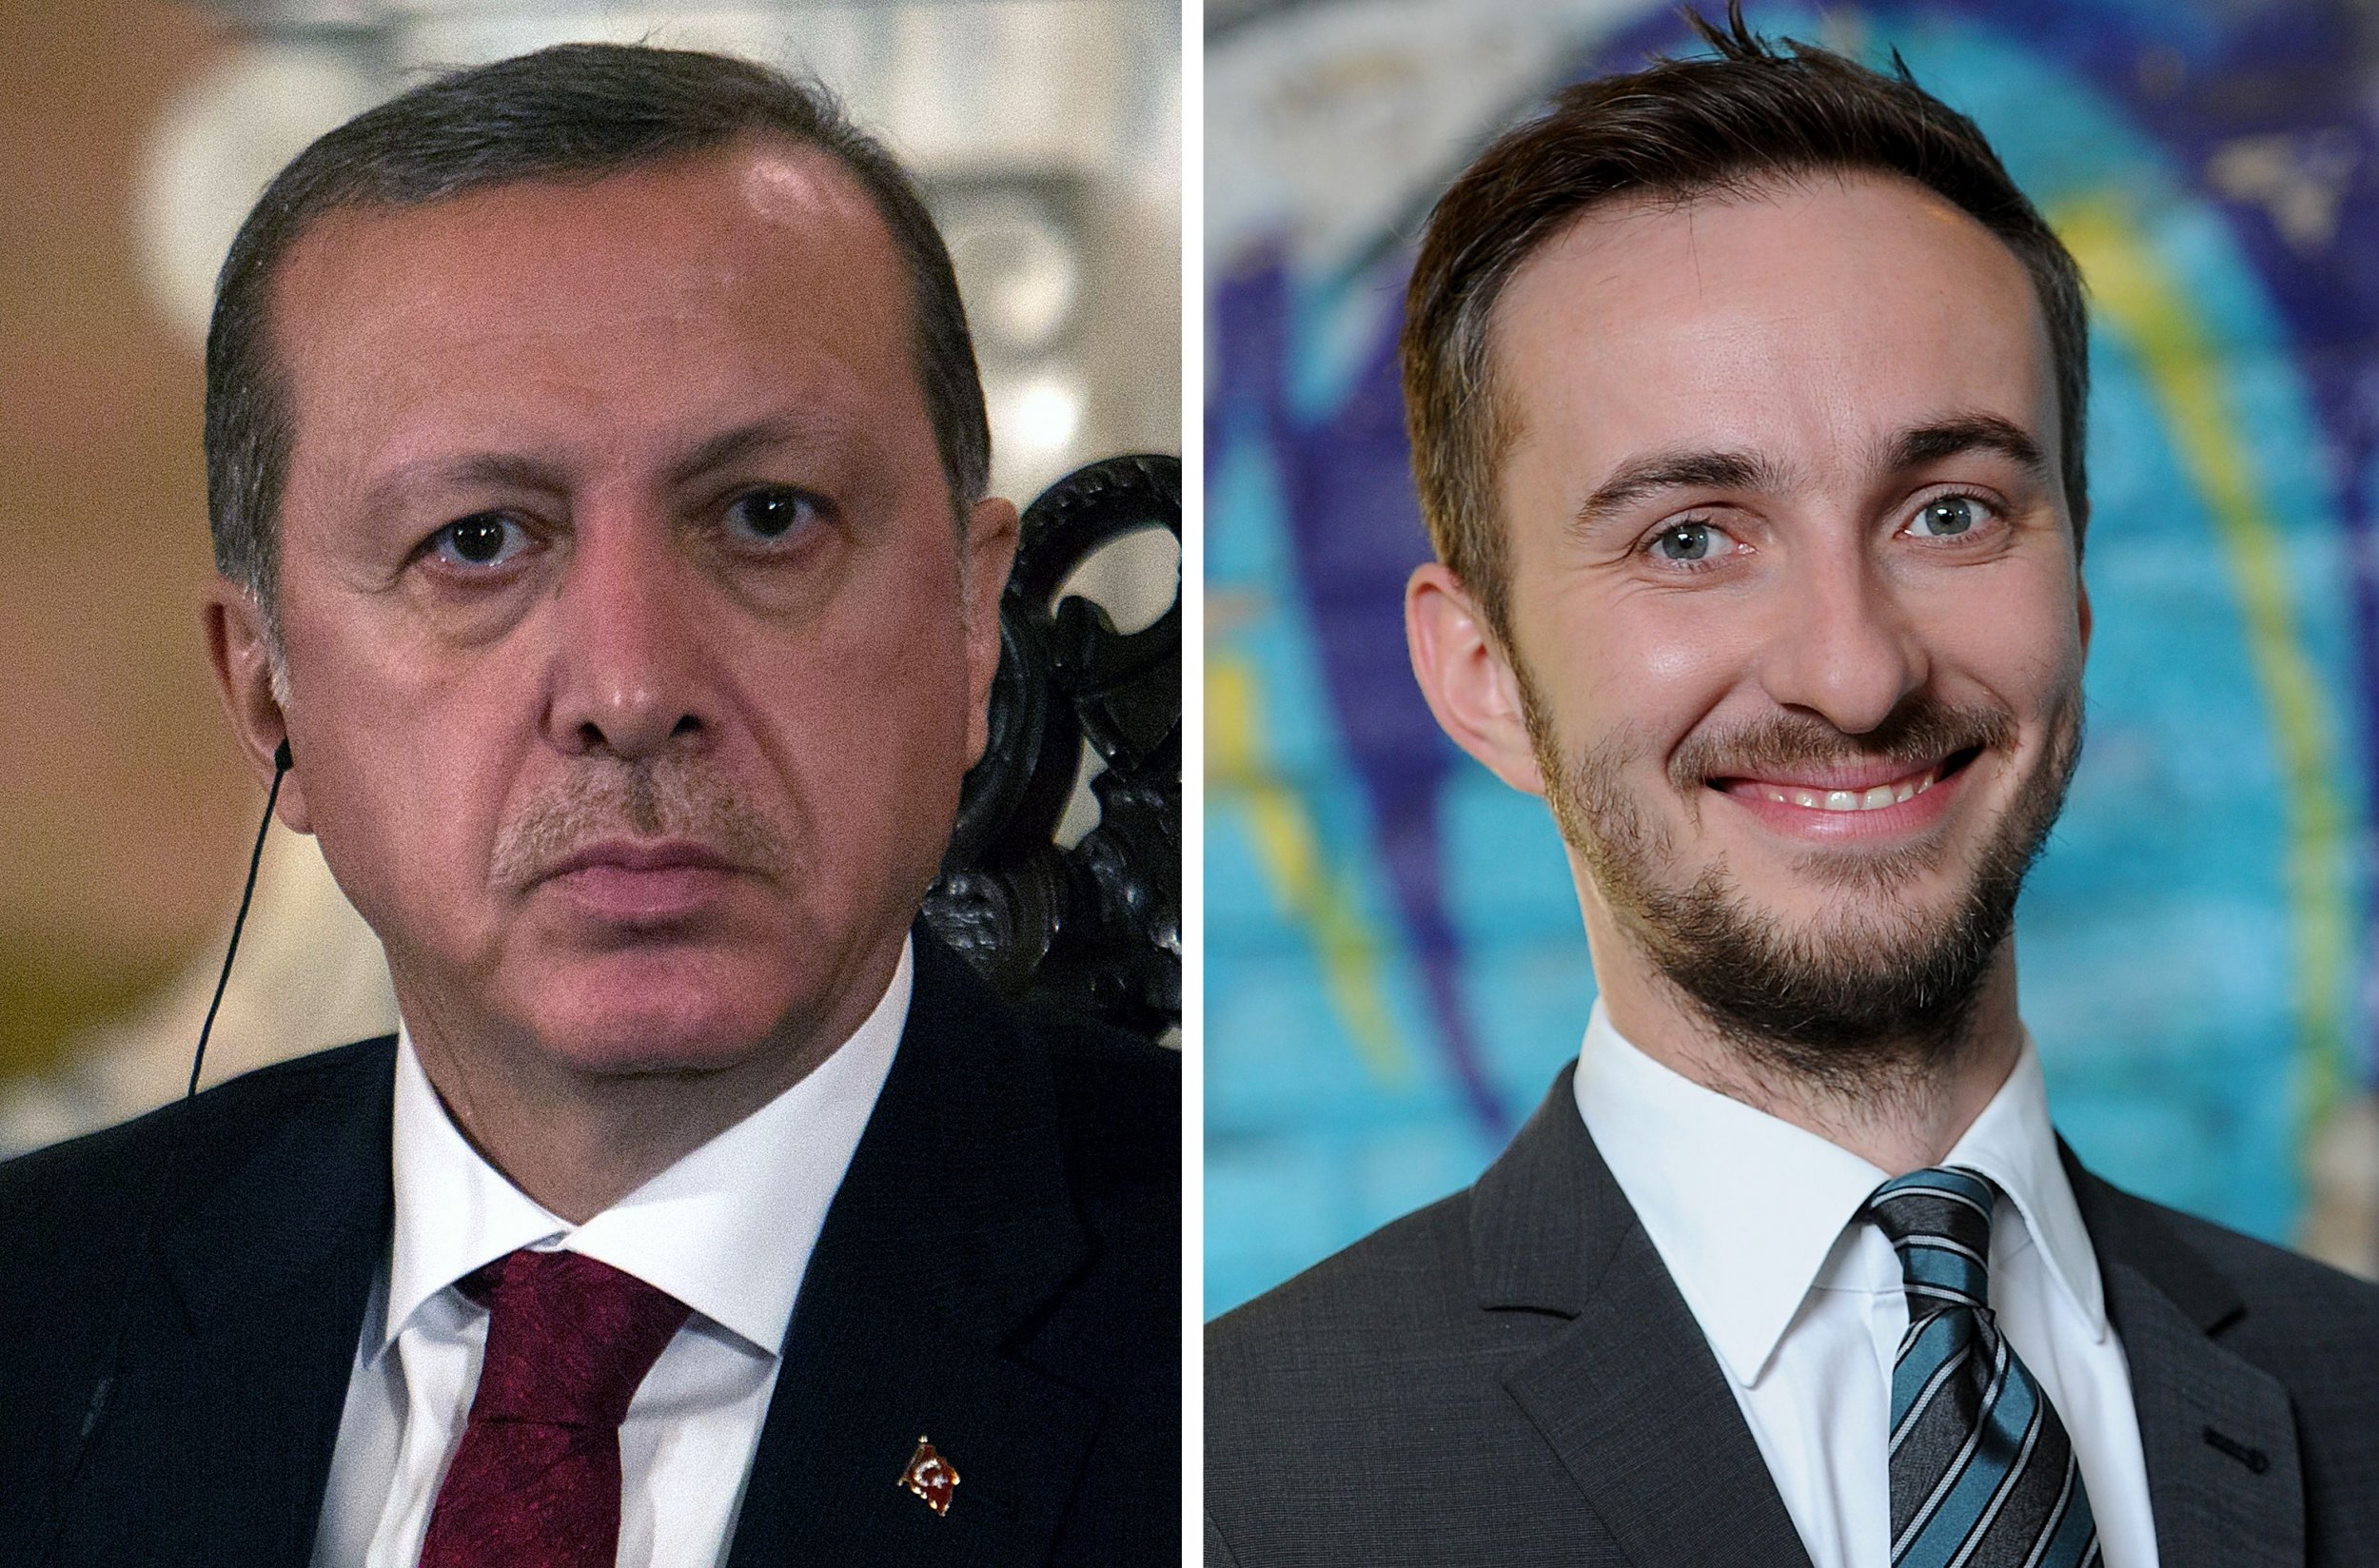 Turkish President Erdogan and Comedian Boehmermann